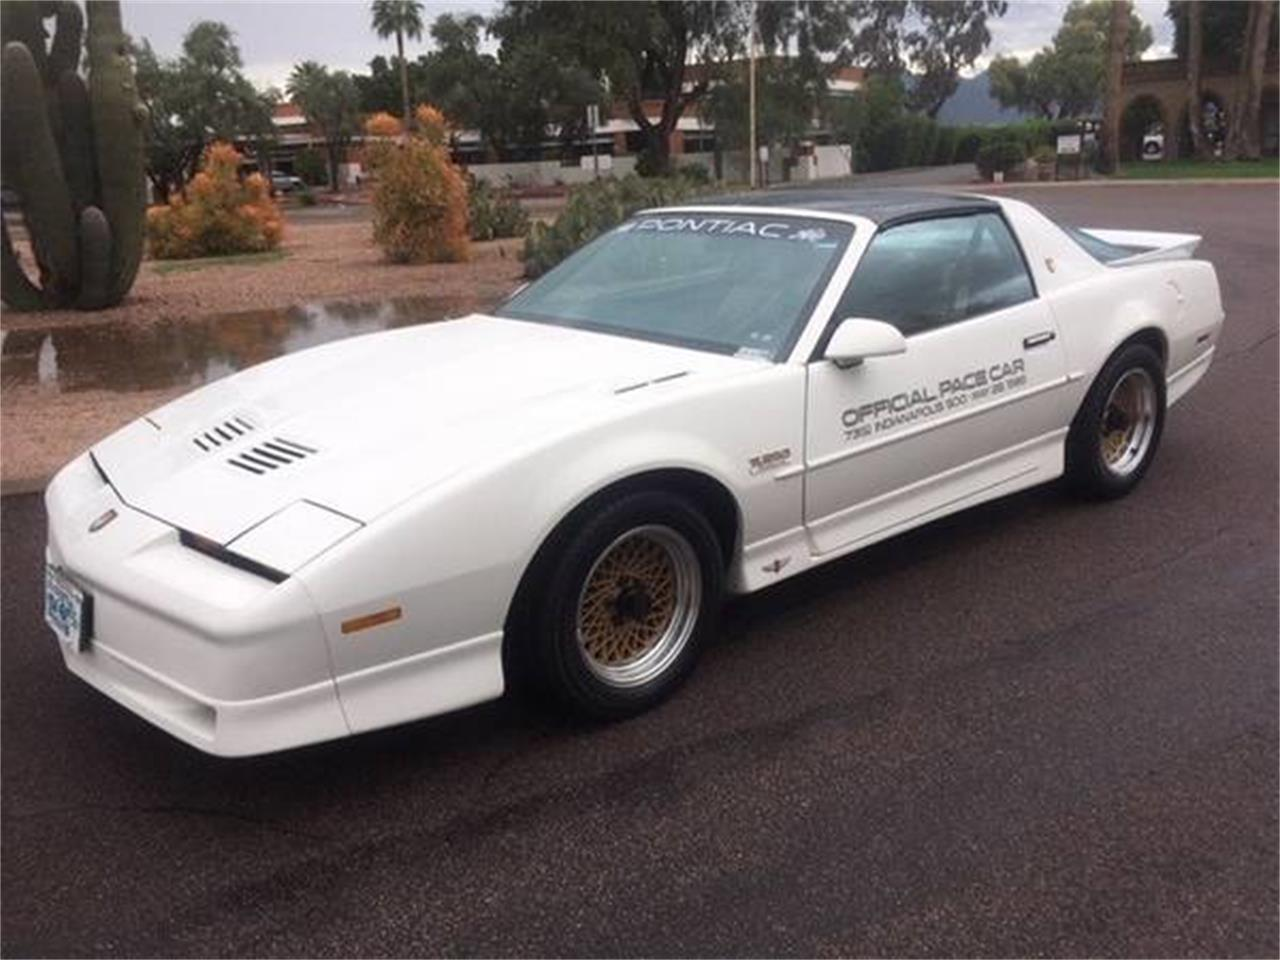 1989 Pontiac Firebird Trans Am Turbo Indy Pace Car Edition (CC-1384848) for sale in Scottsdale, Arizona